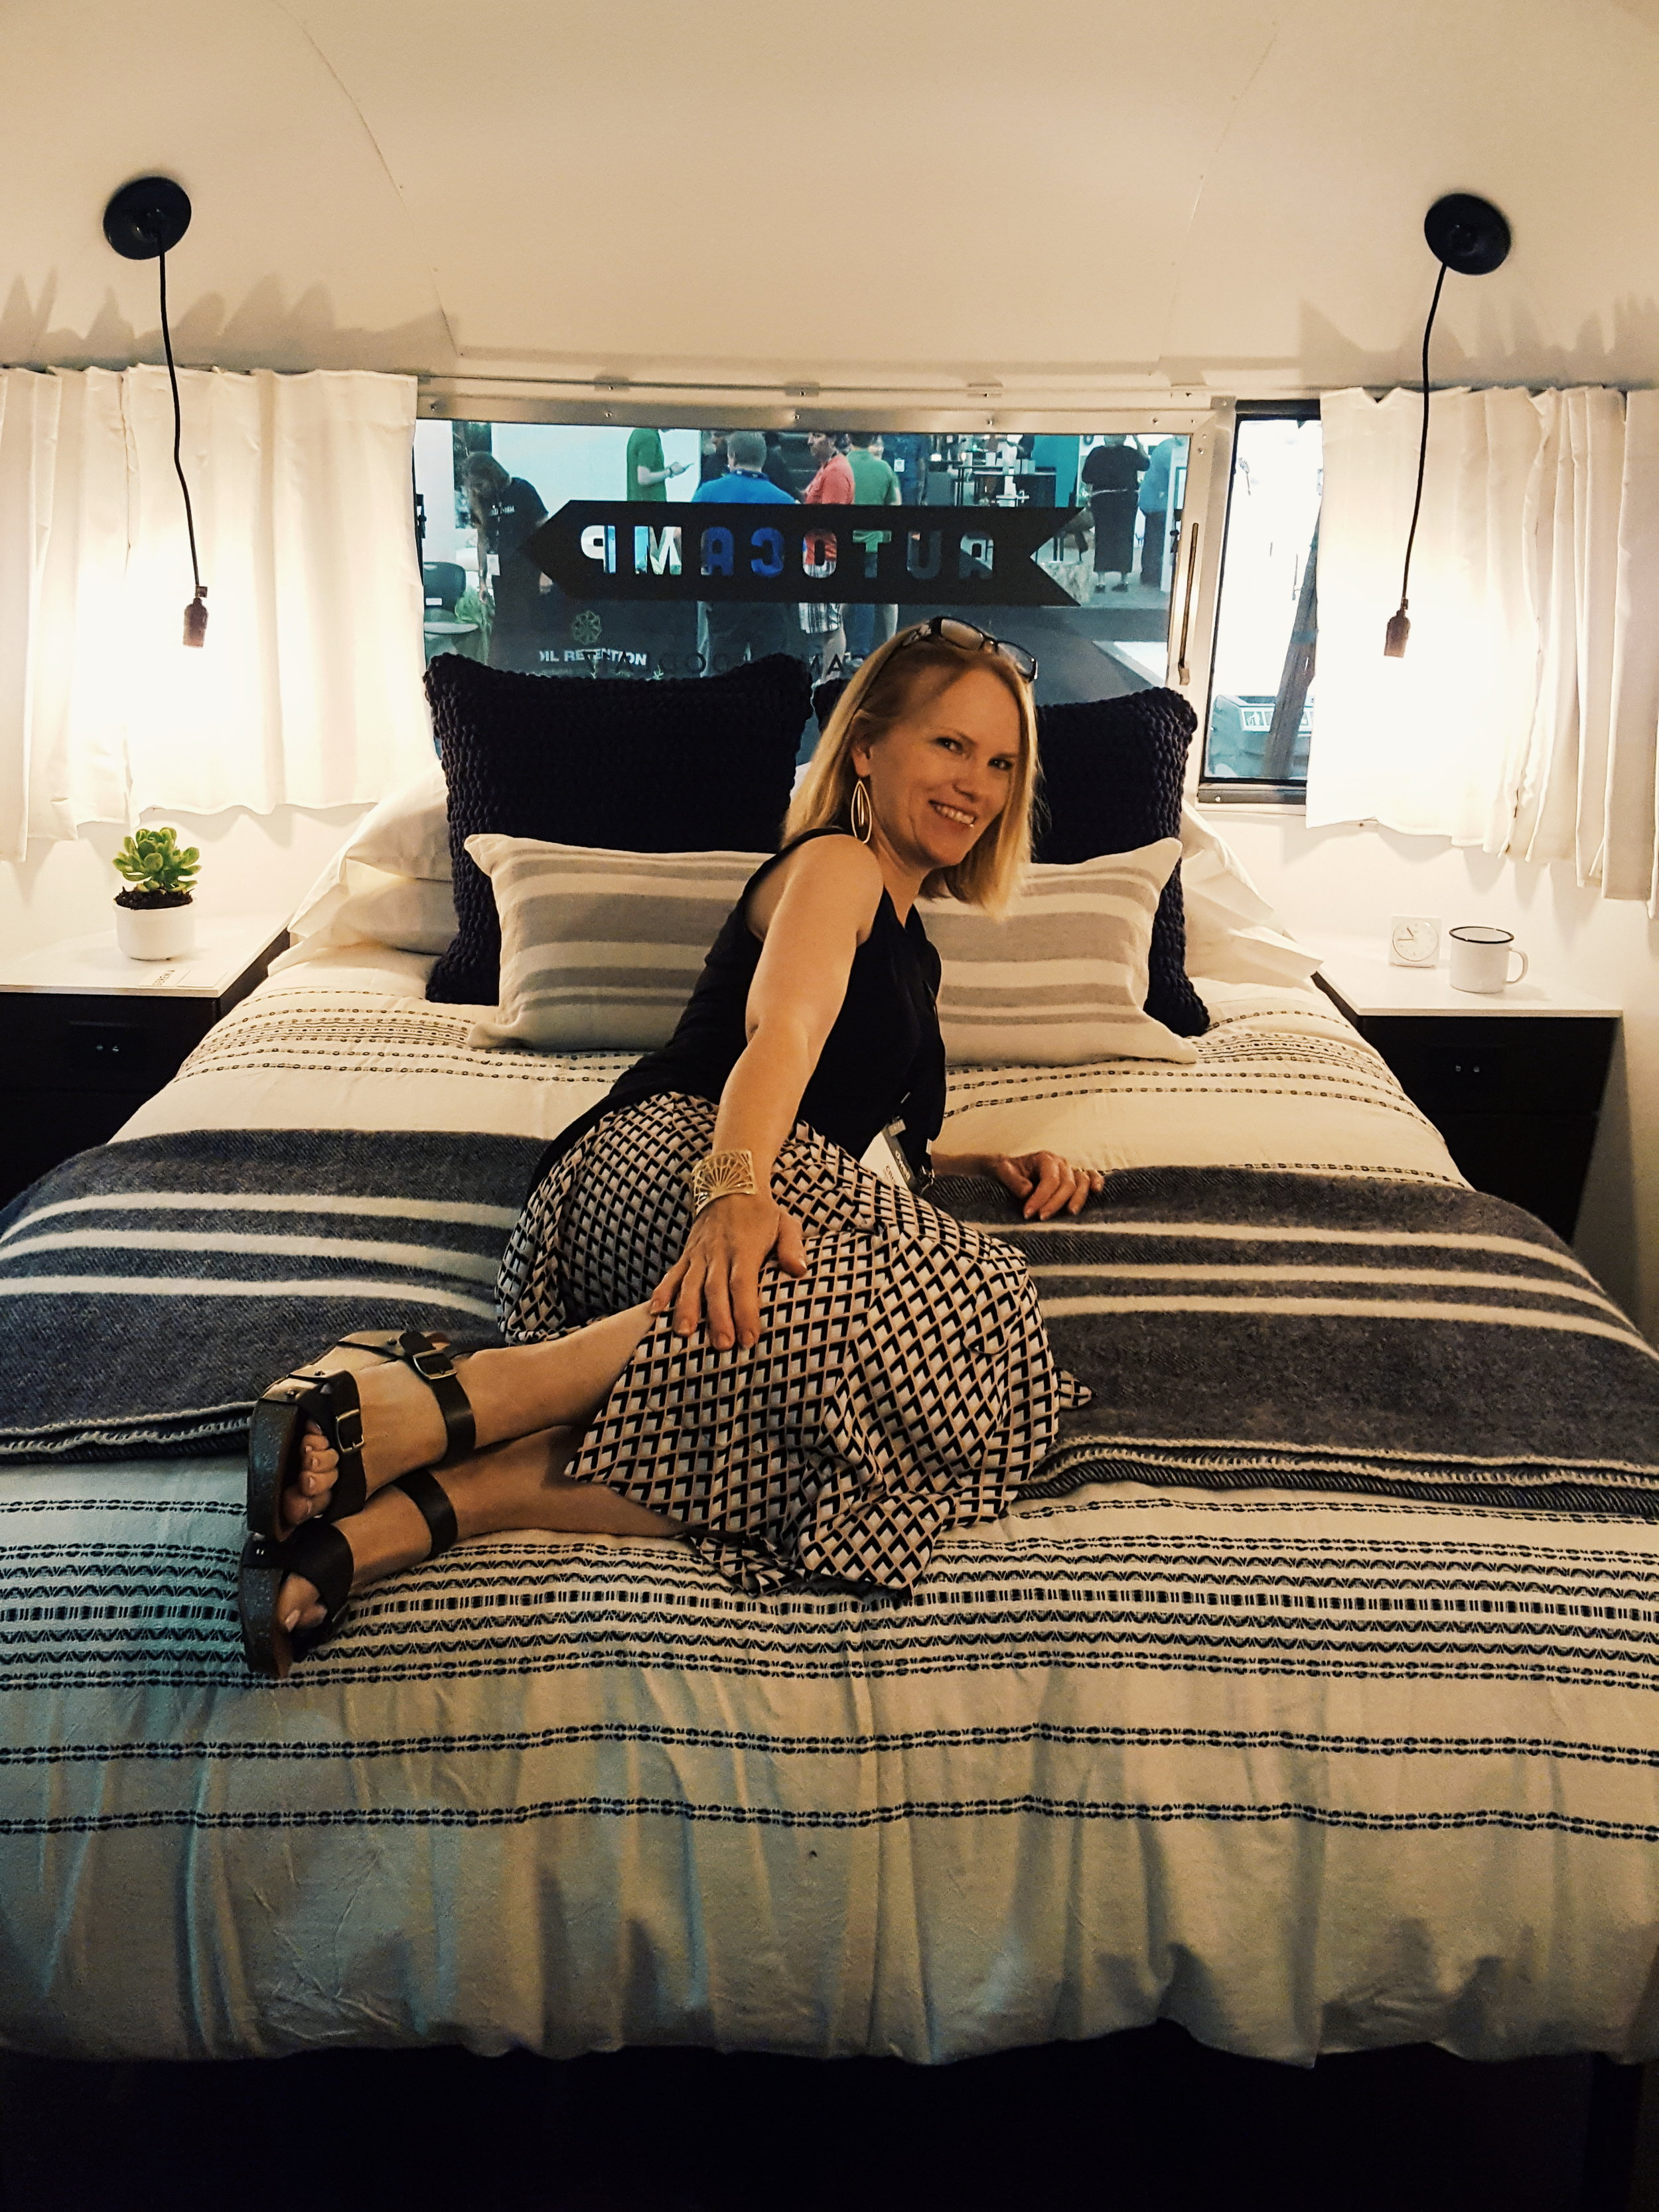 (Autocamp rep was cool enough to let me test out their trailer's bed!)